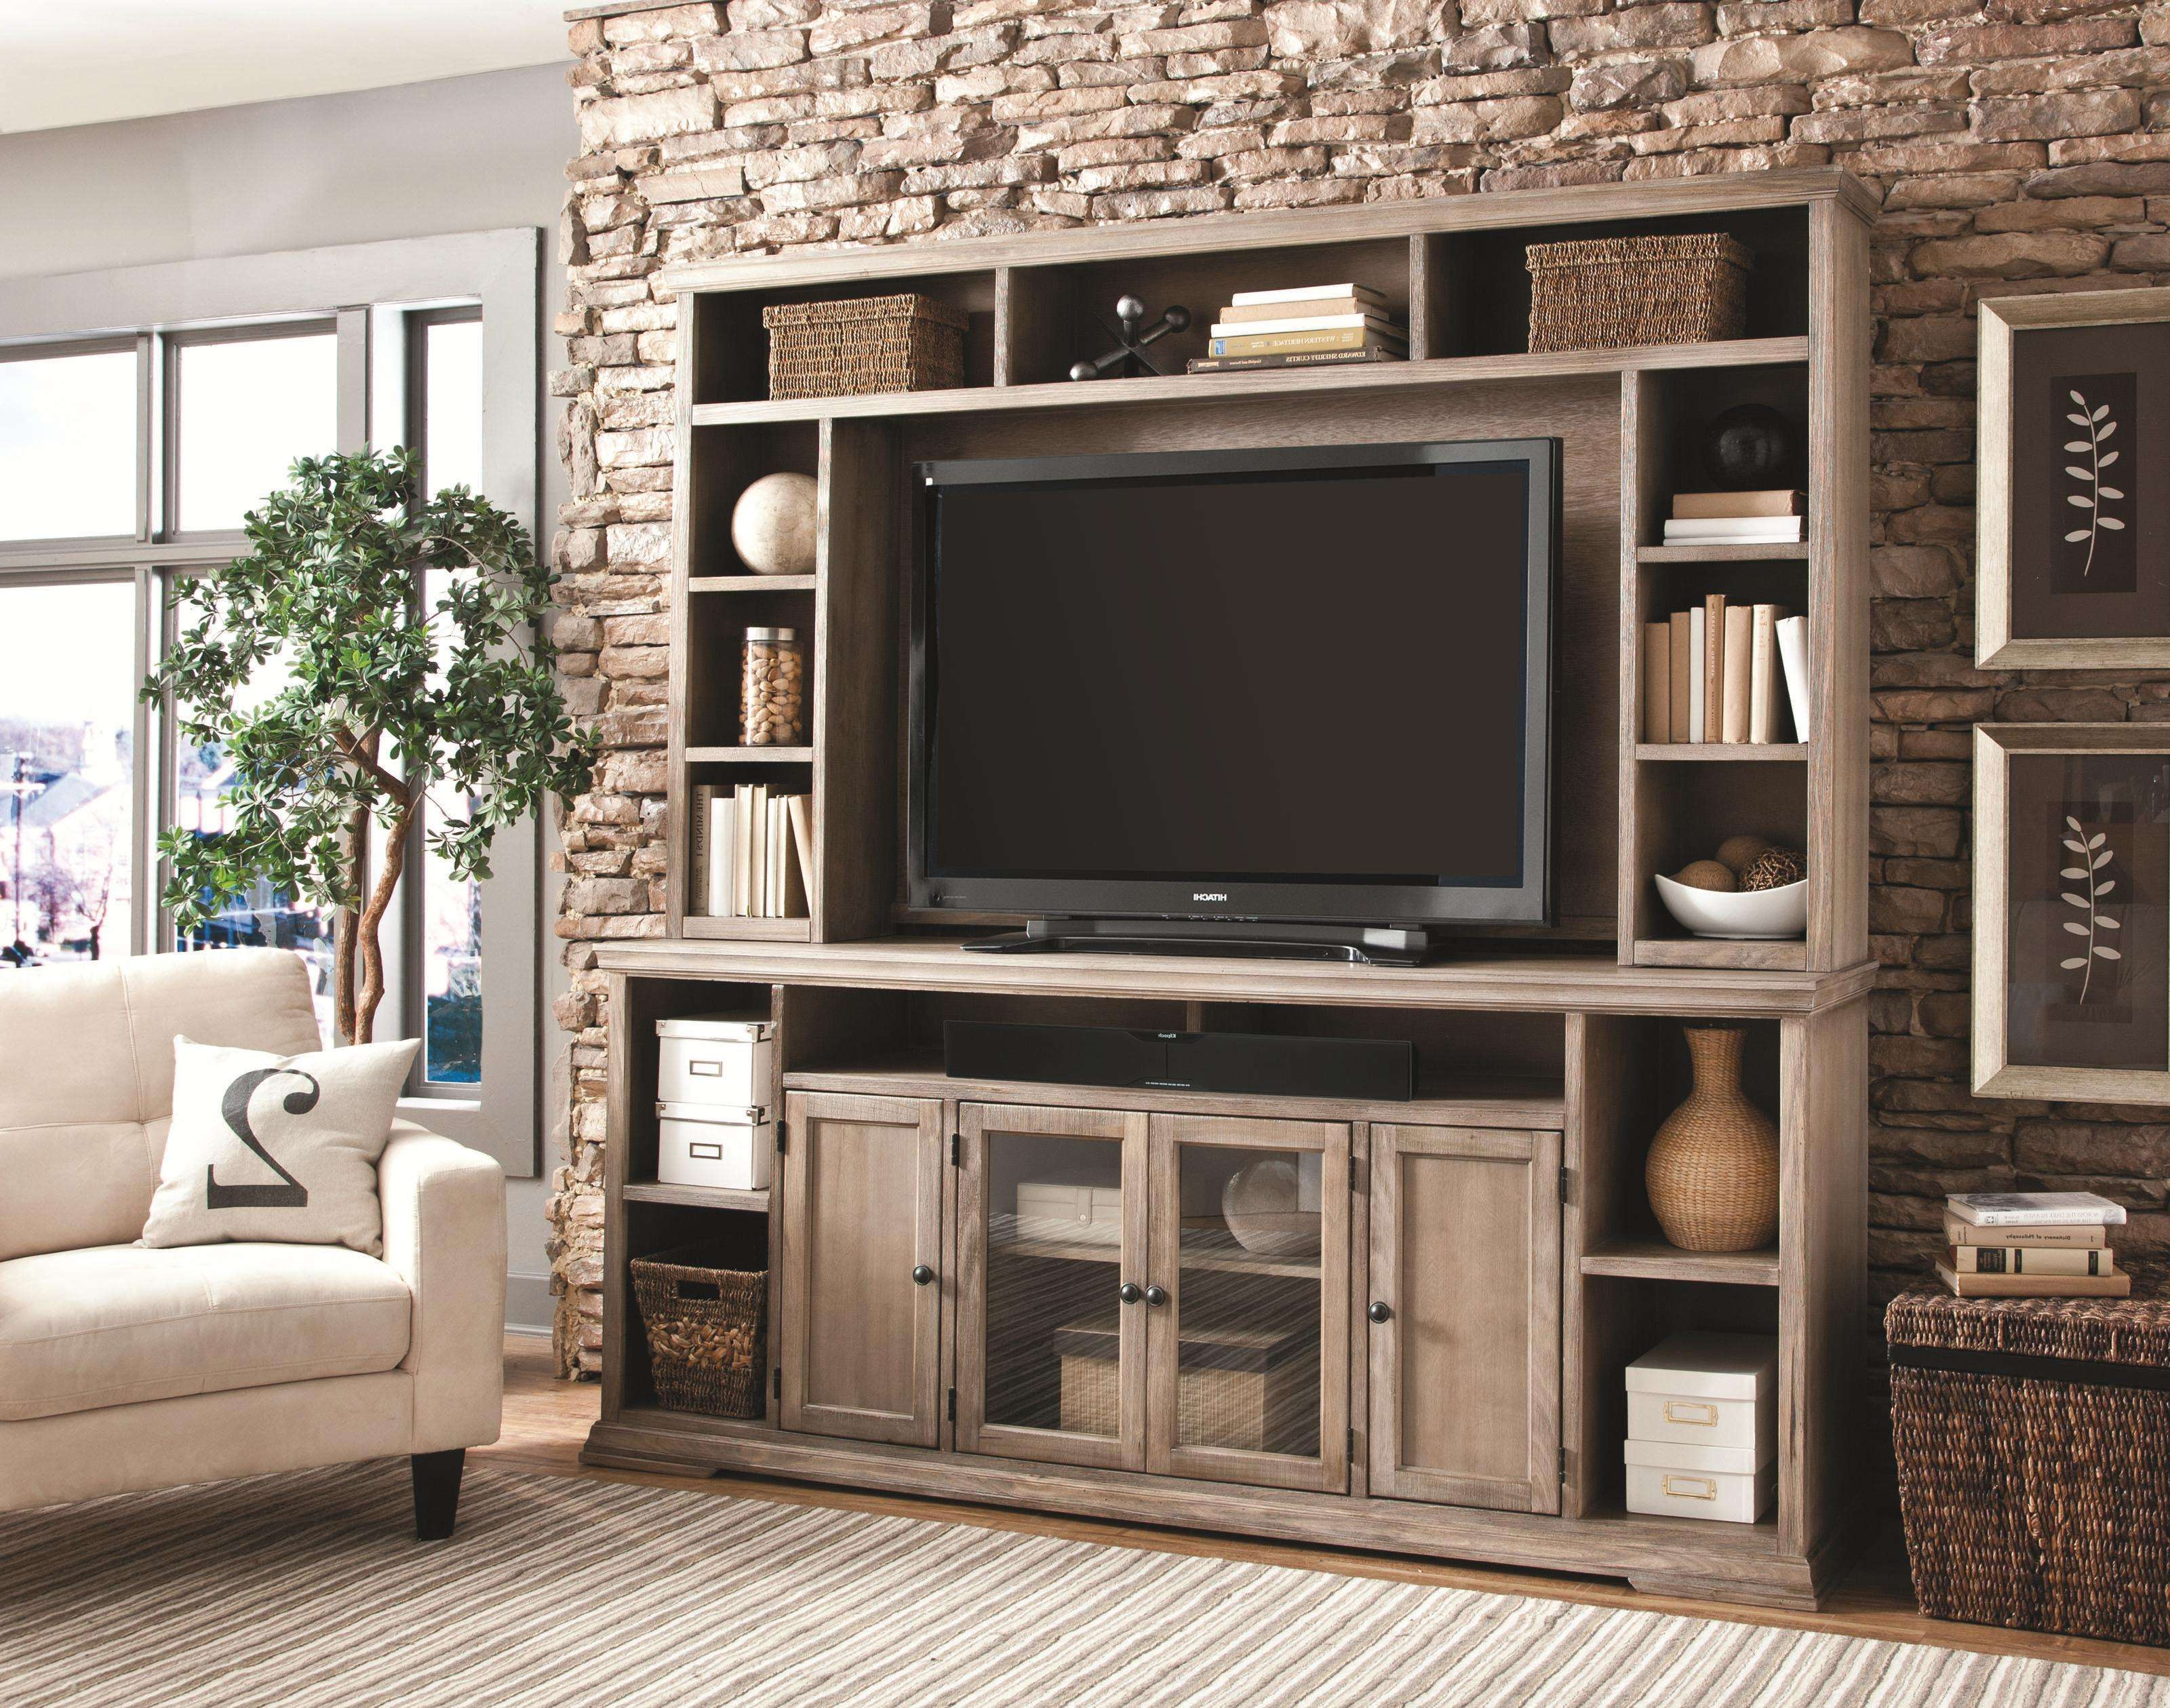 Charmant Alluring Custom Made Shabby Cottage Tv Cabinet For Wrap Around Throughout  Full Wall Tv Cabinets (